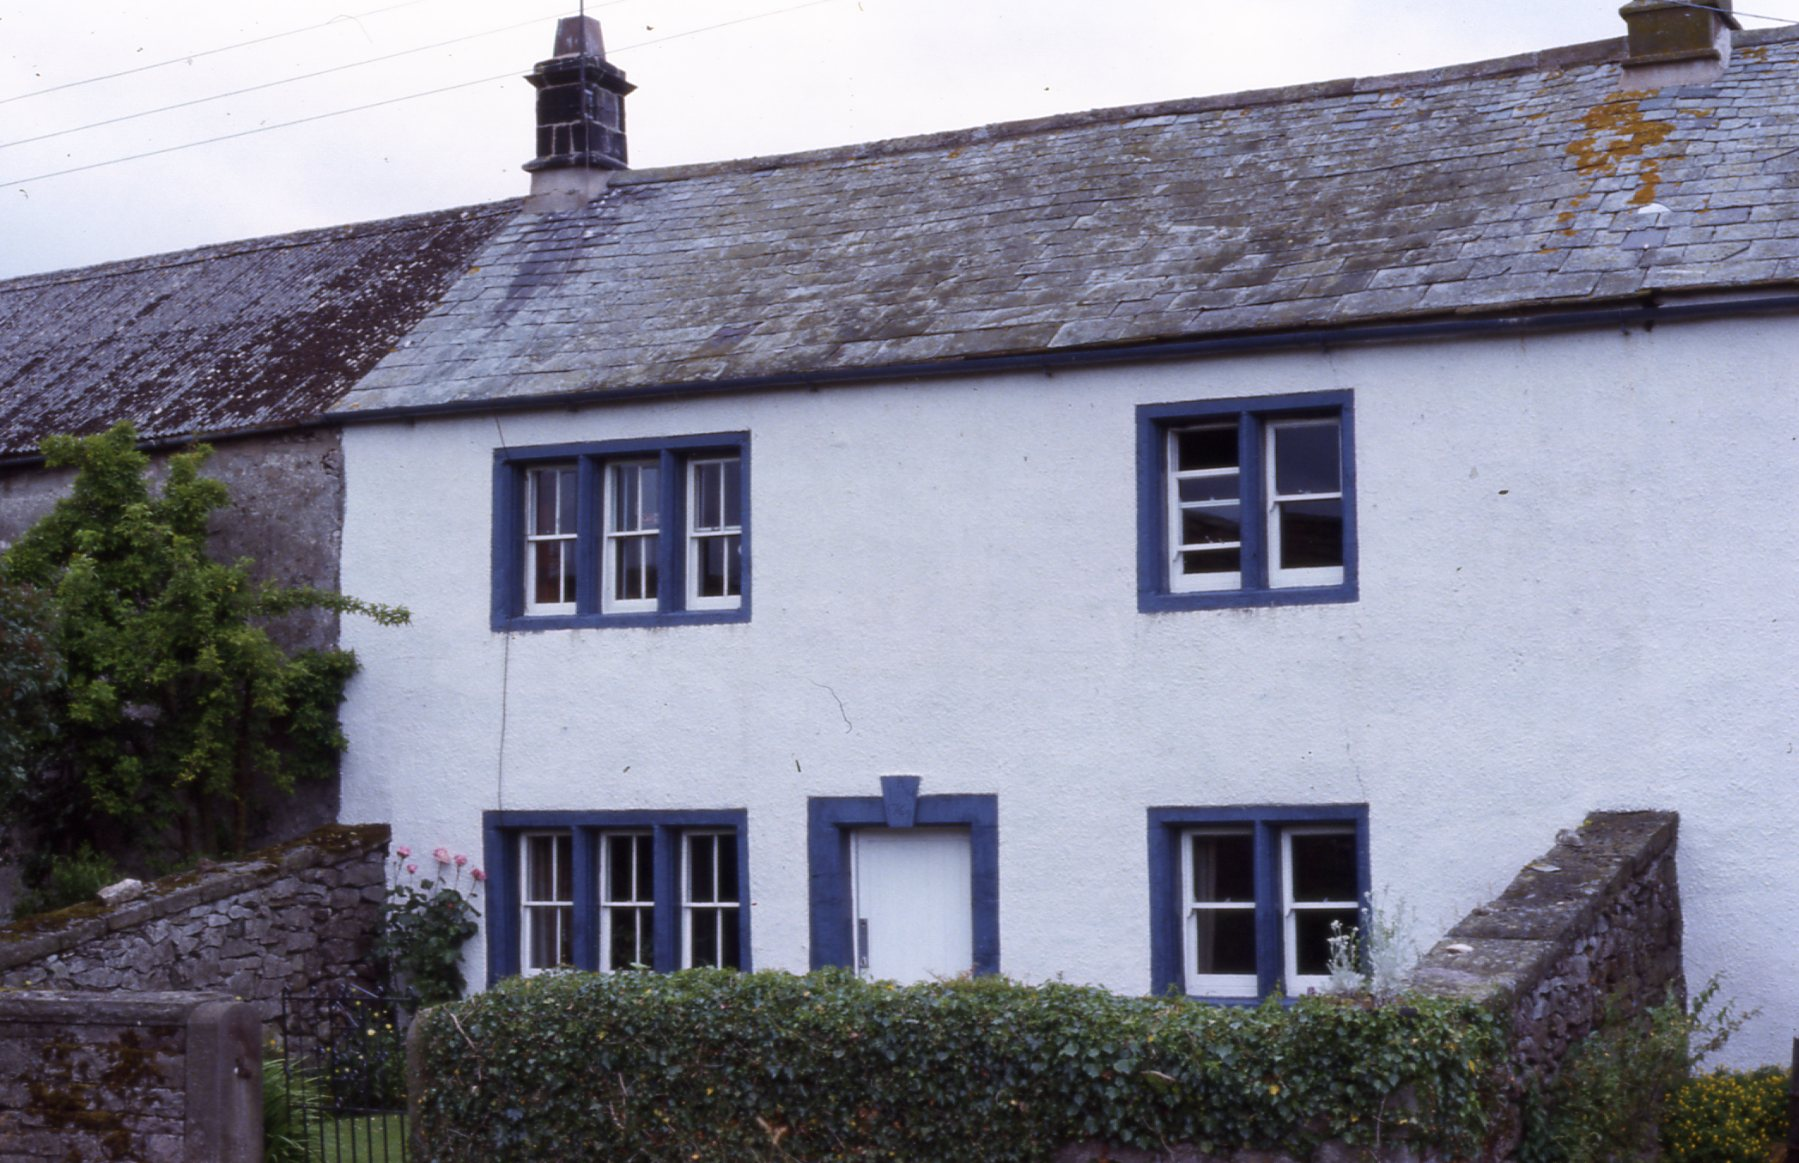 Little Blencow Farm, ca 2000